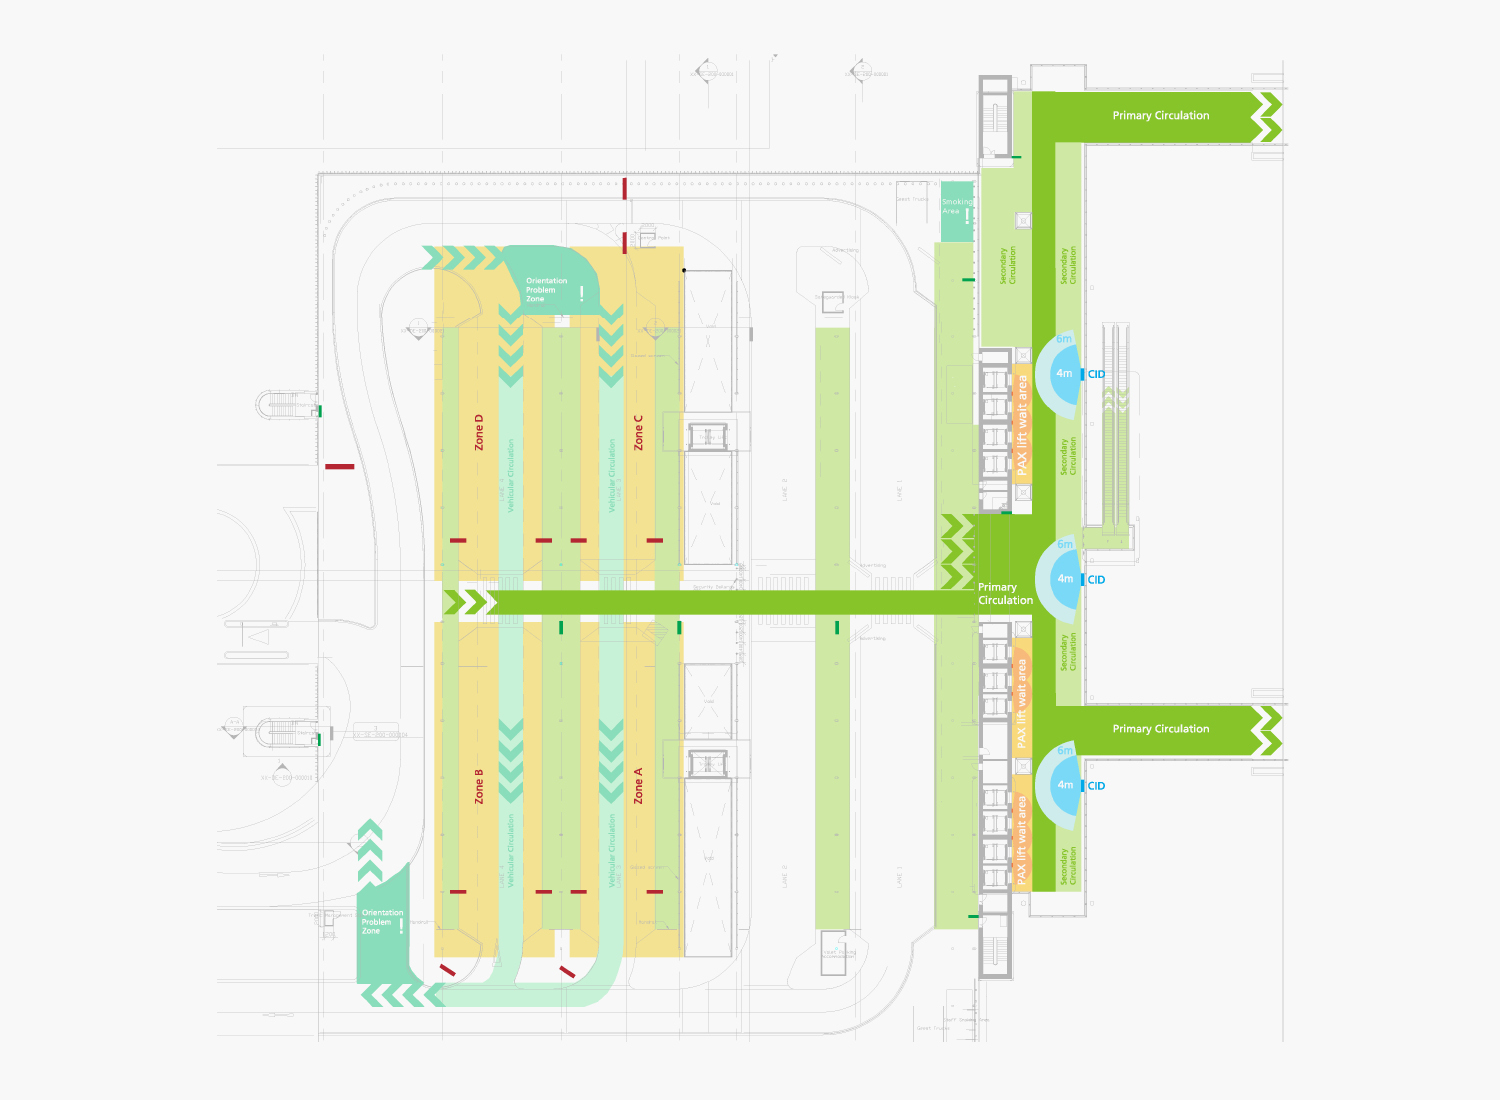 Pedestrian an Vehicle flow at the ope level of the Car Park